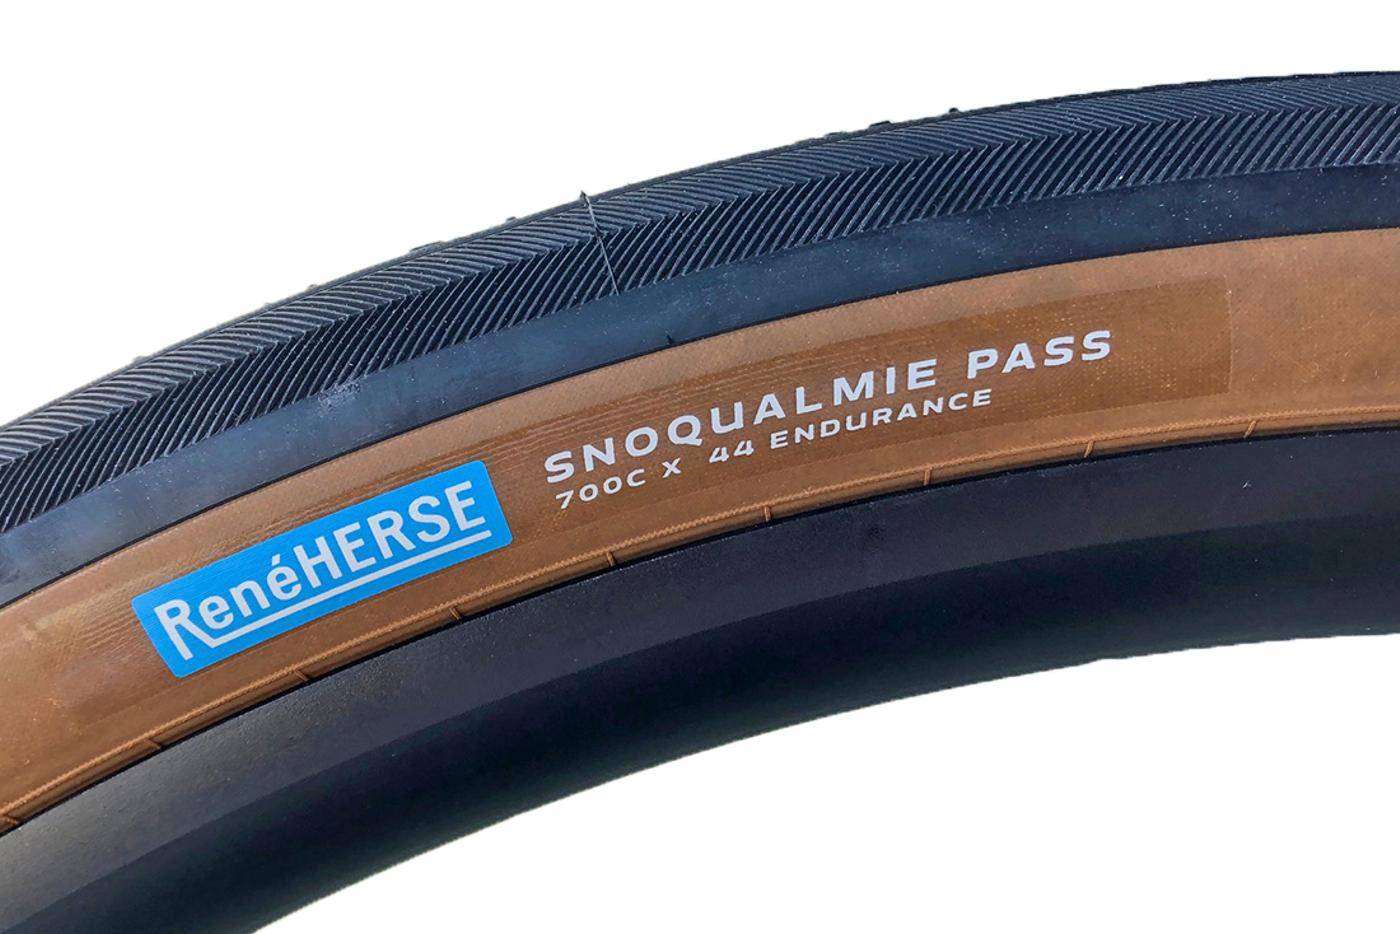 René Herse: 700C x 44 Snoqualmie Pass with the Endurance Casing